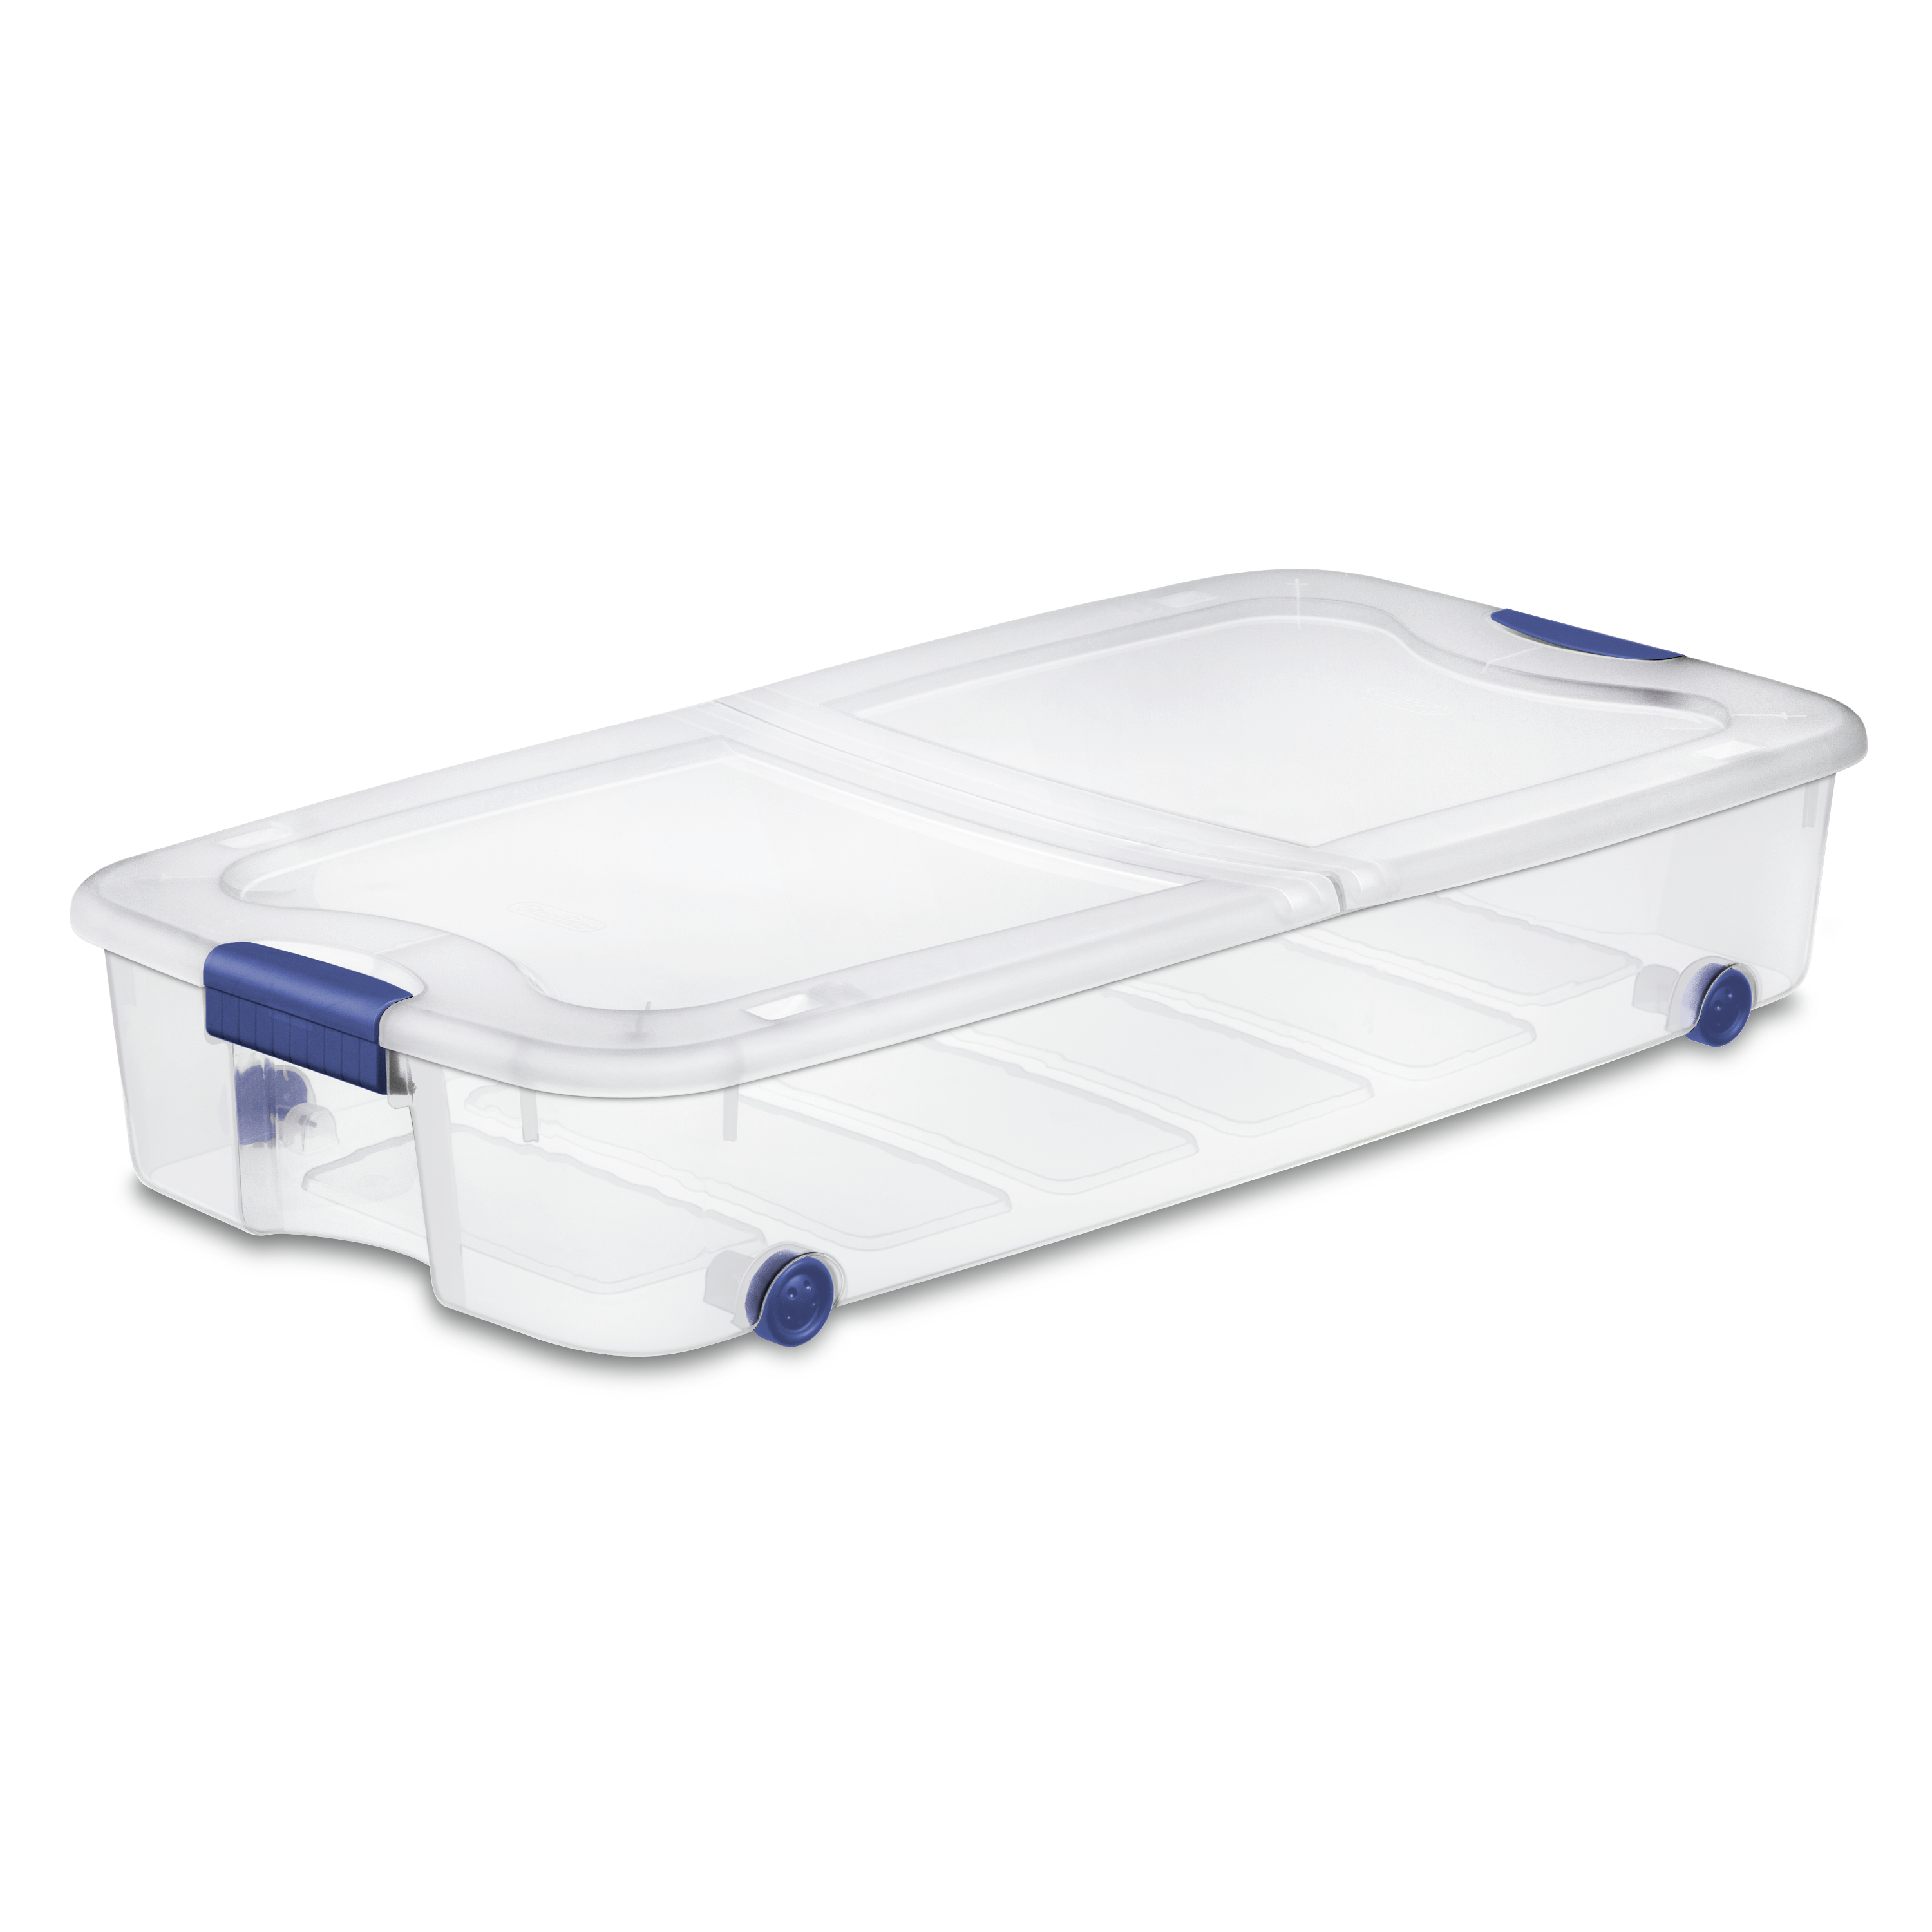 Sterilite 66 Qt./62 L Ultra™ Storage Box, Stadium Blue